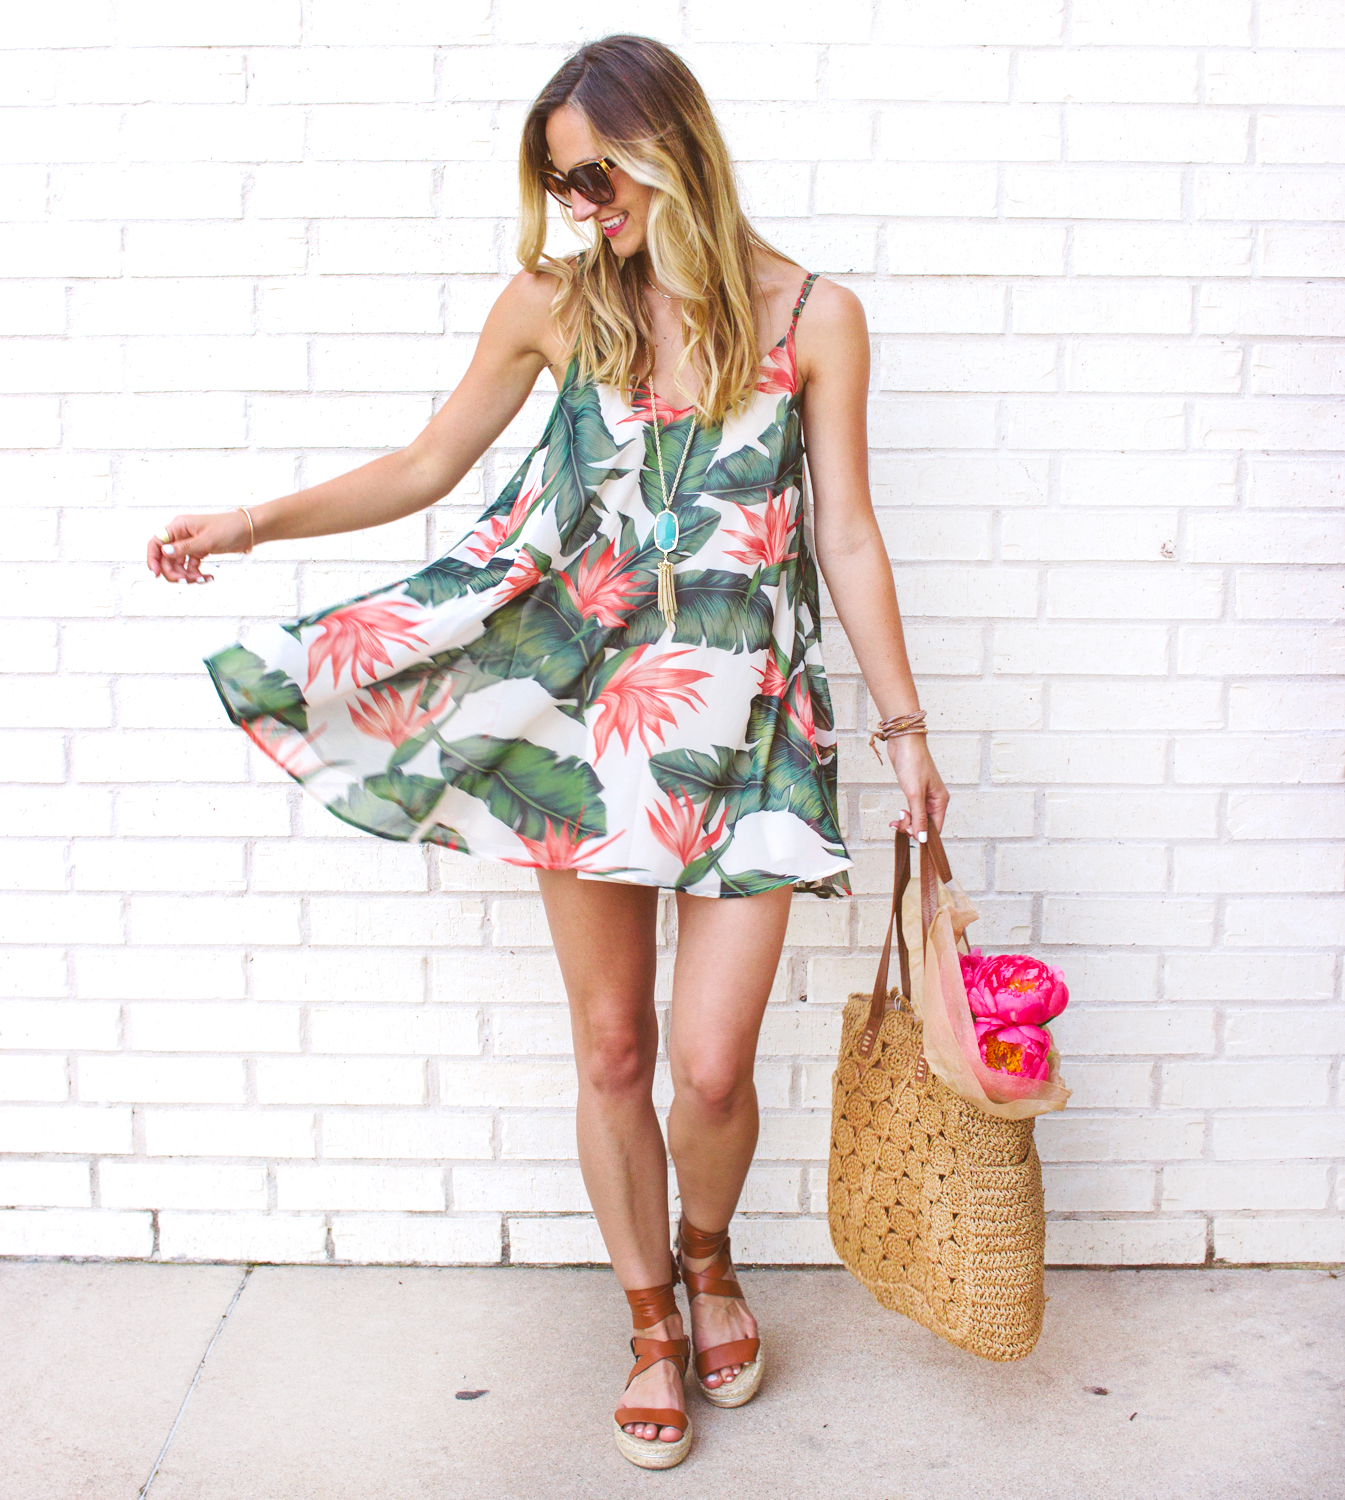 livvyland-blog-austin-texas-fashion-blogger-show-me-your-mumu-palm-print-circus-mini-dress-summer-outfit-colorful-3